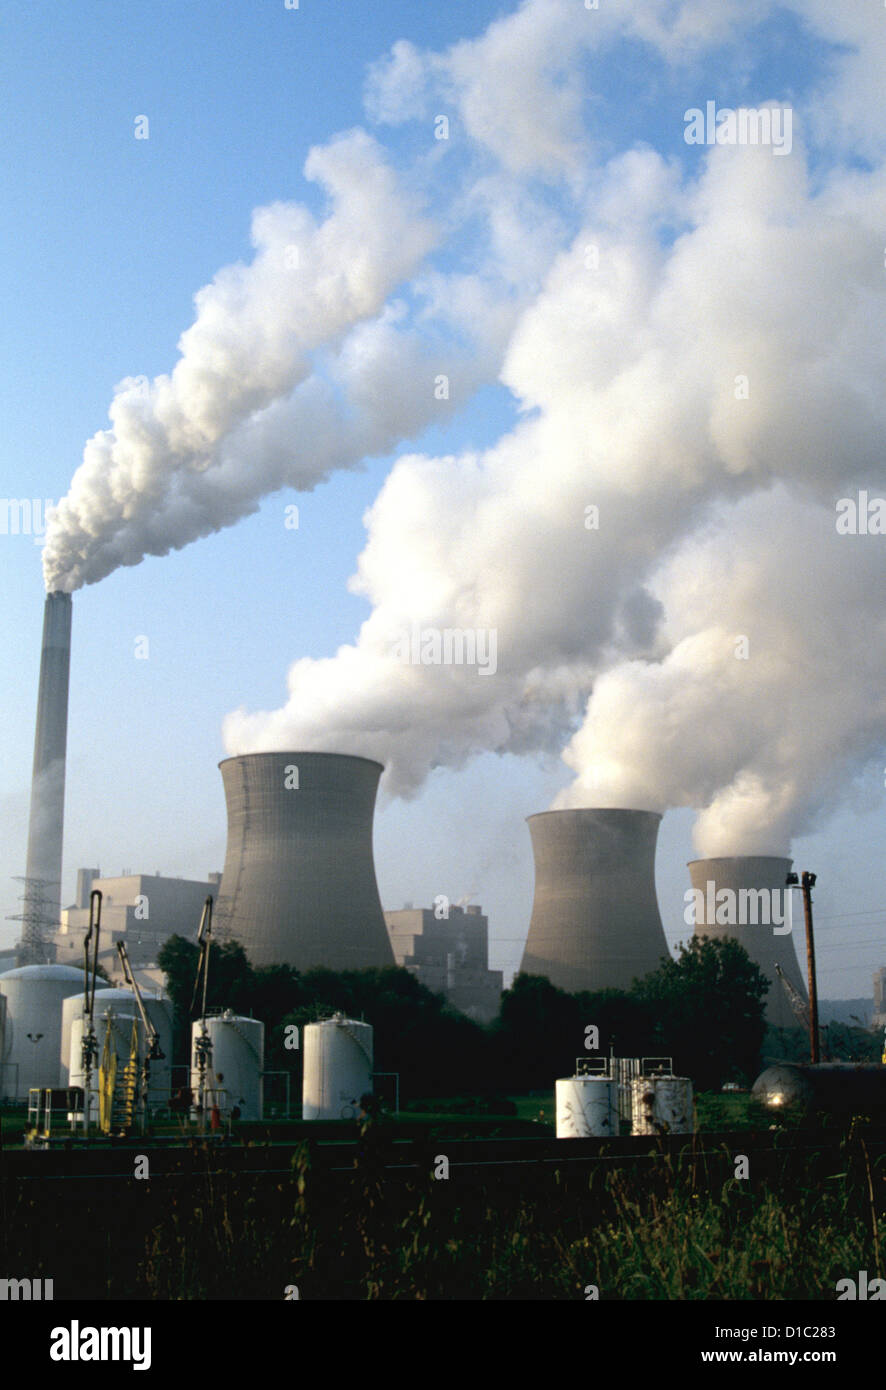 Clouds of white Smoke billow from towers of West Virginia nuclear power plant in West Virginia - Stock Image